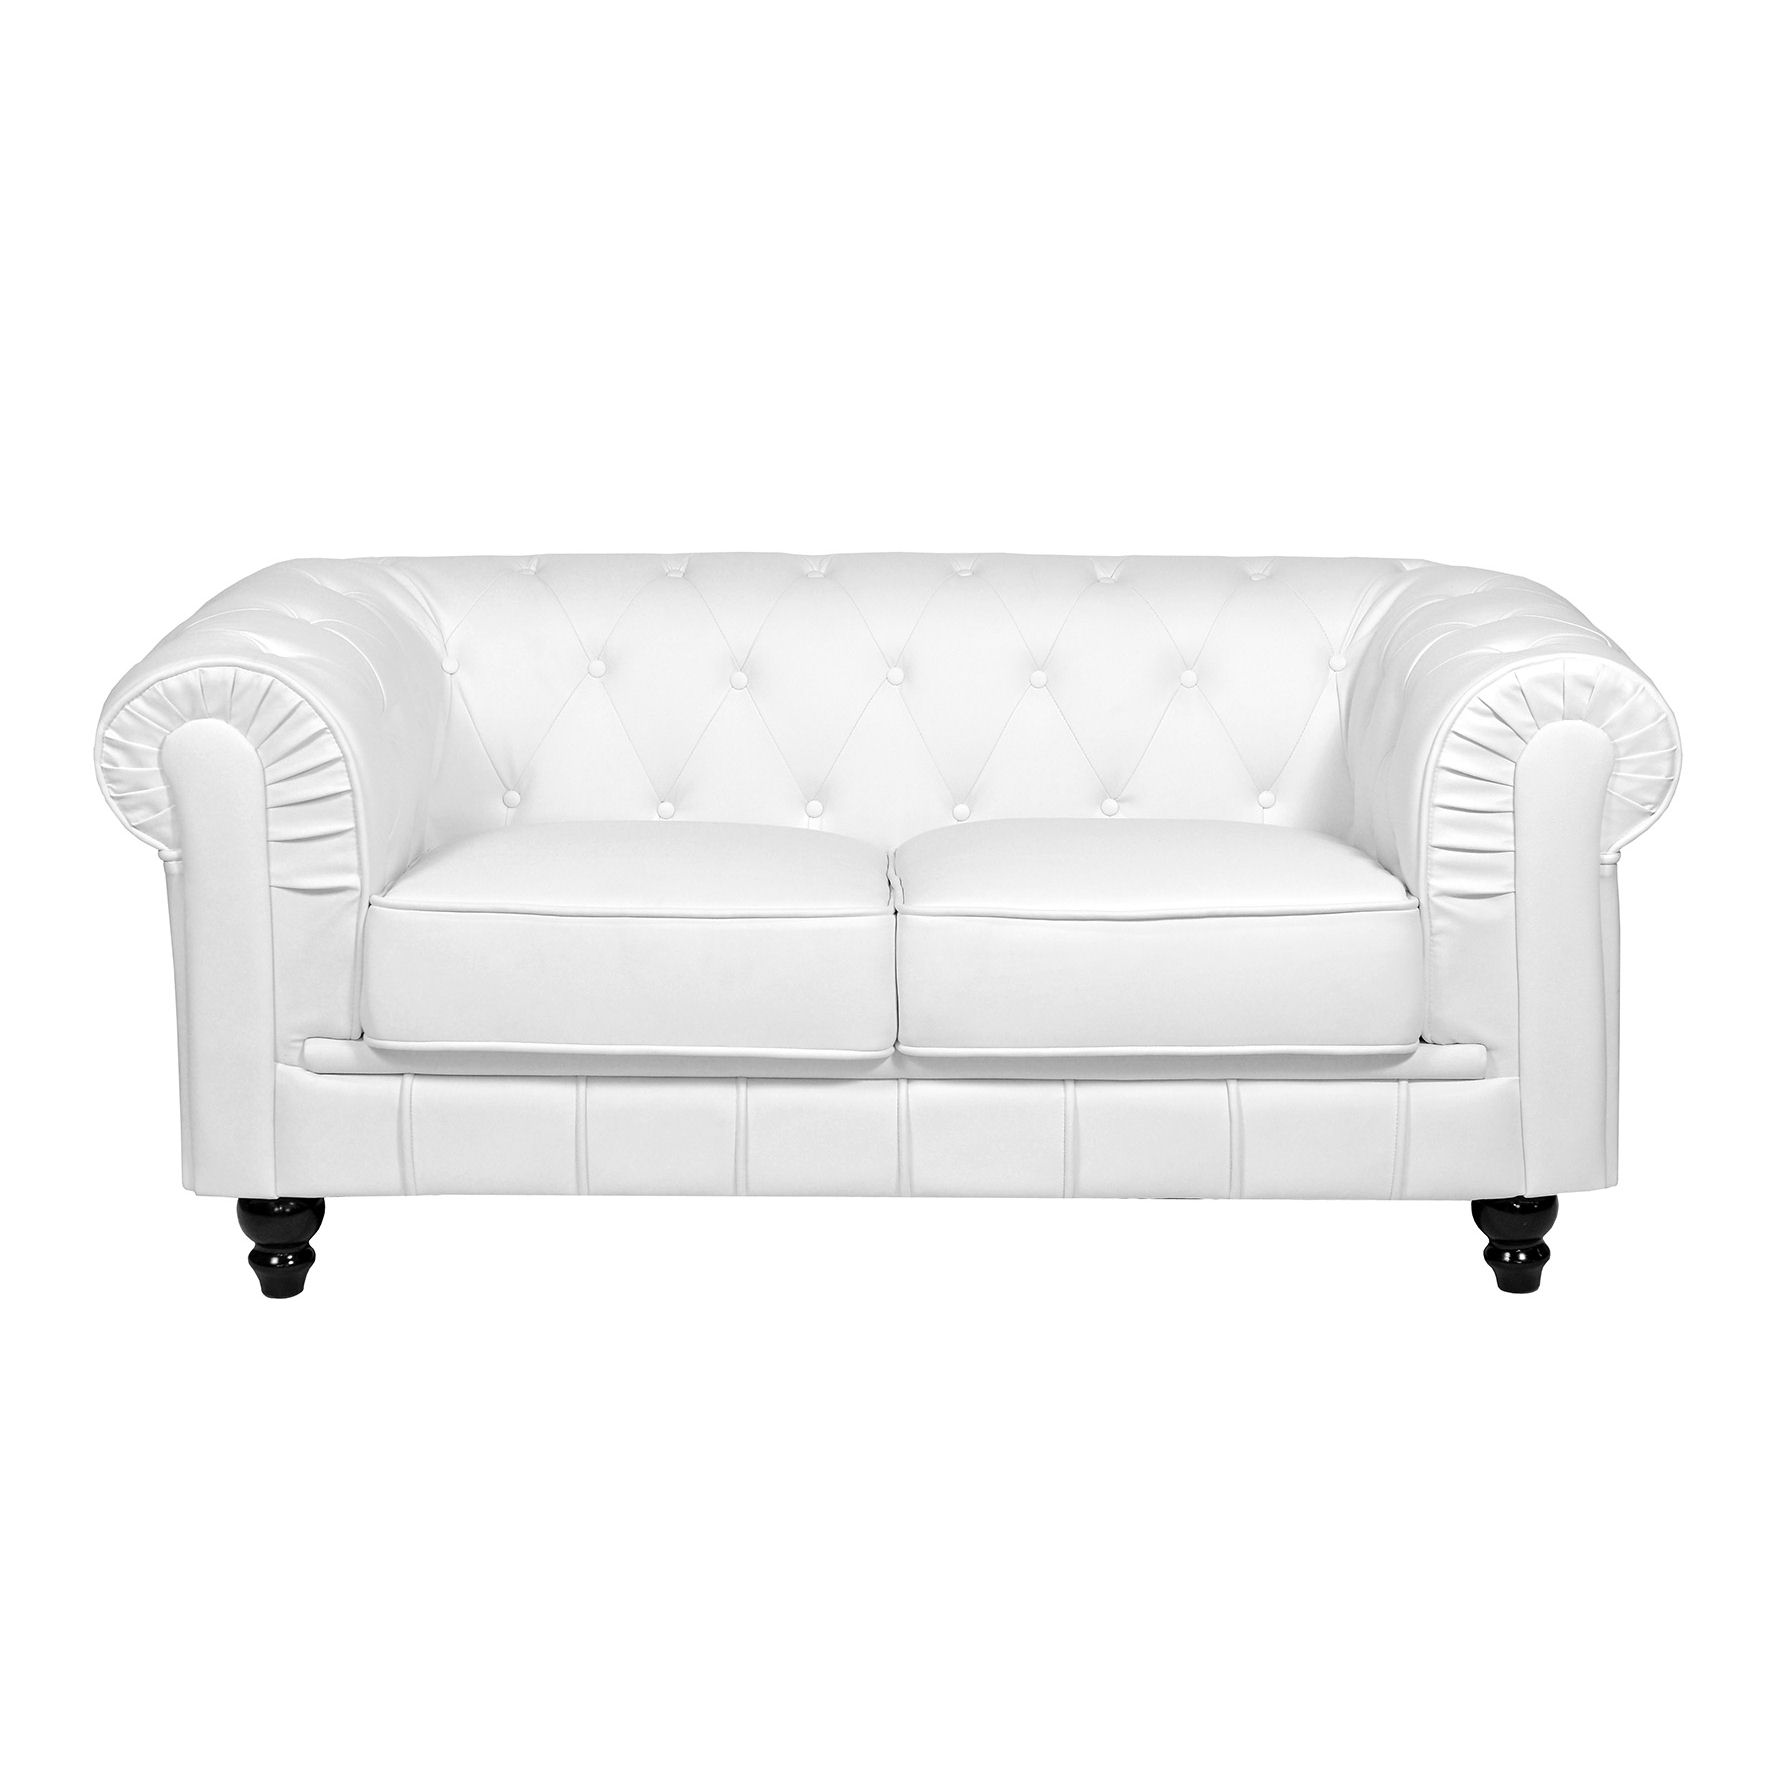 Deco in paris canape 2 places blanc chesterfield can chester 2p pu blanc - Canape 2 places blanc ...